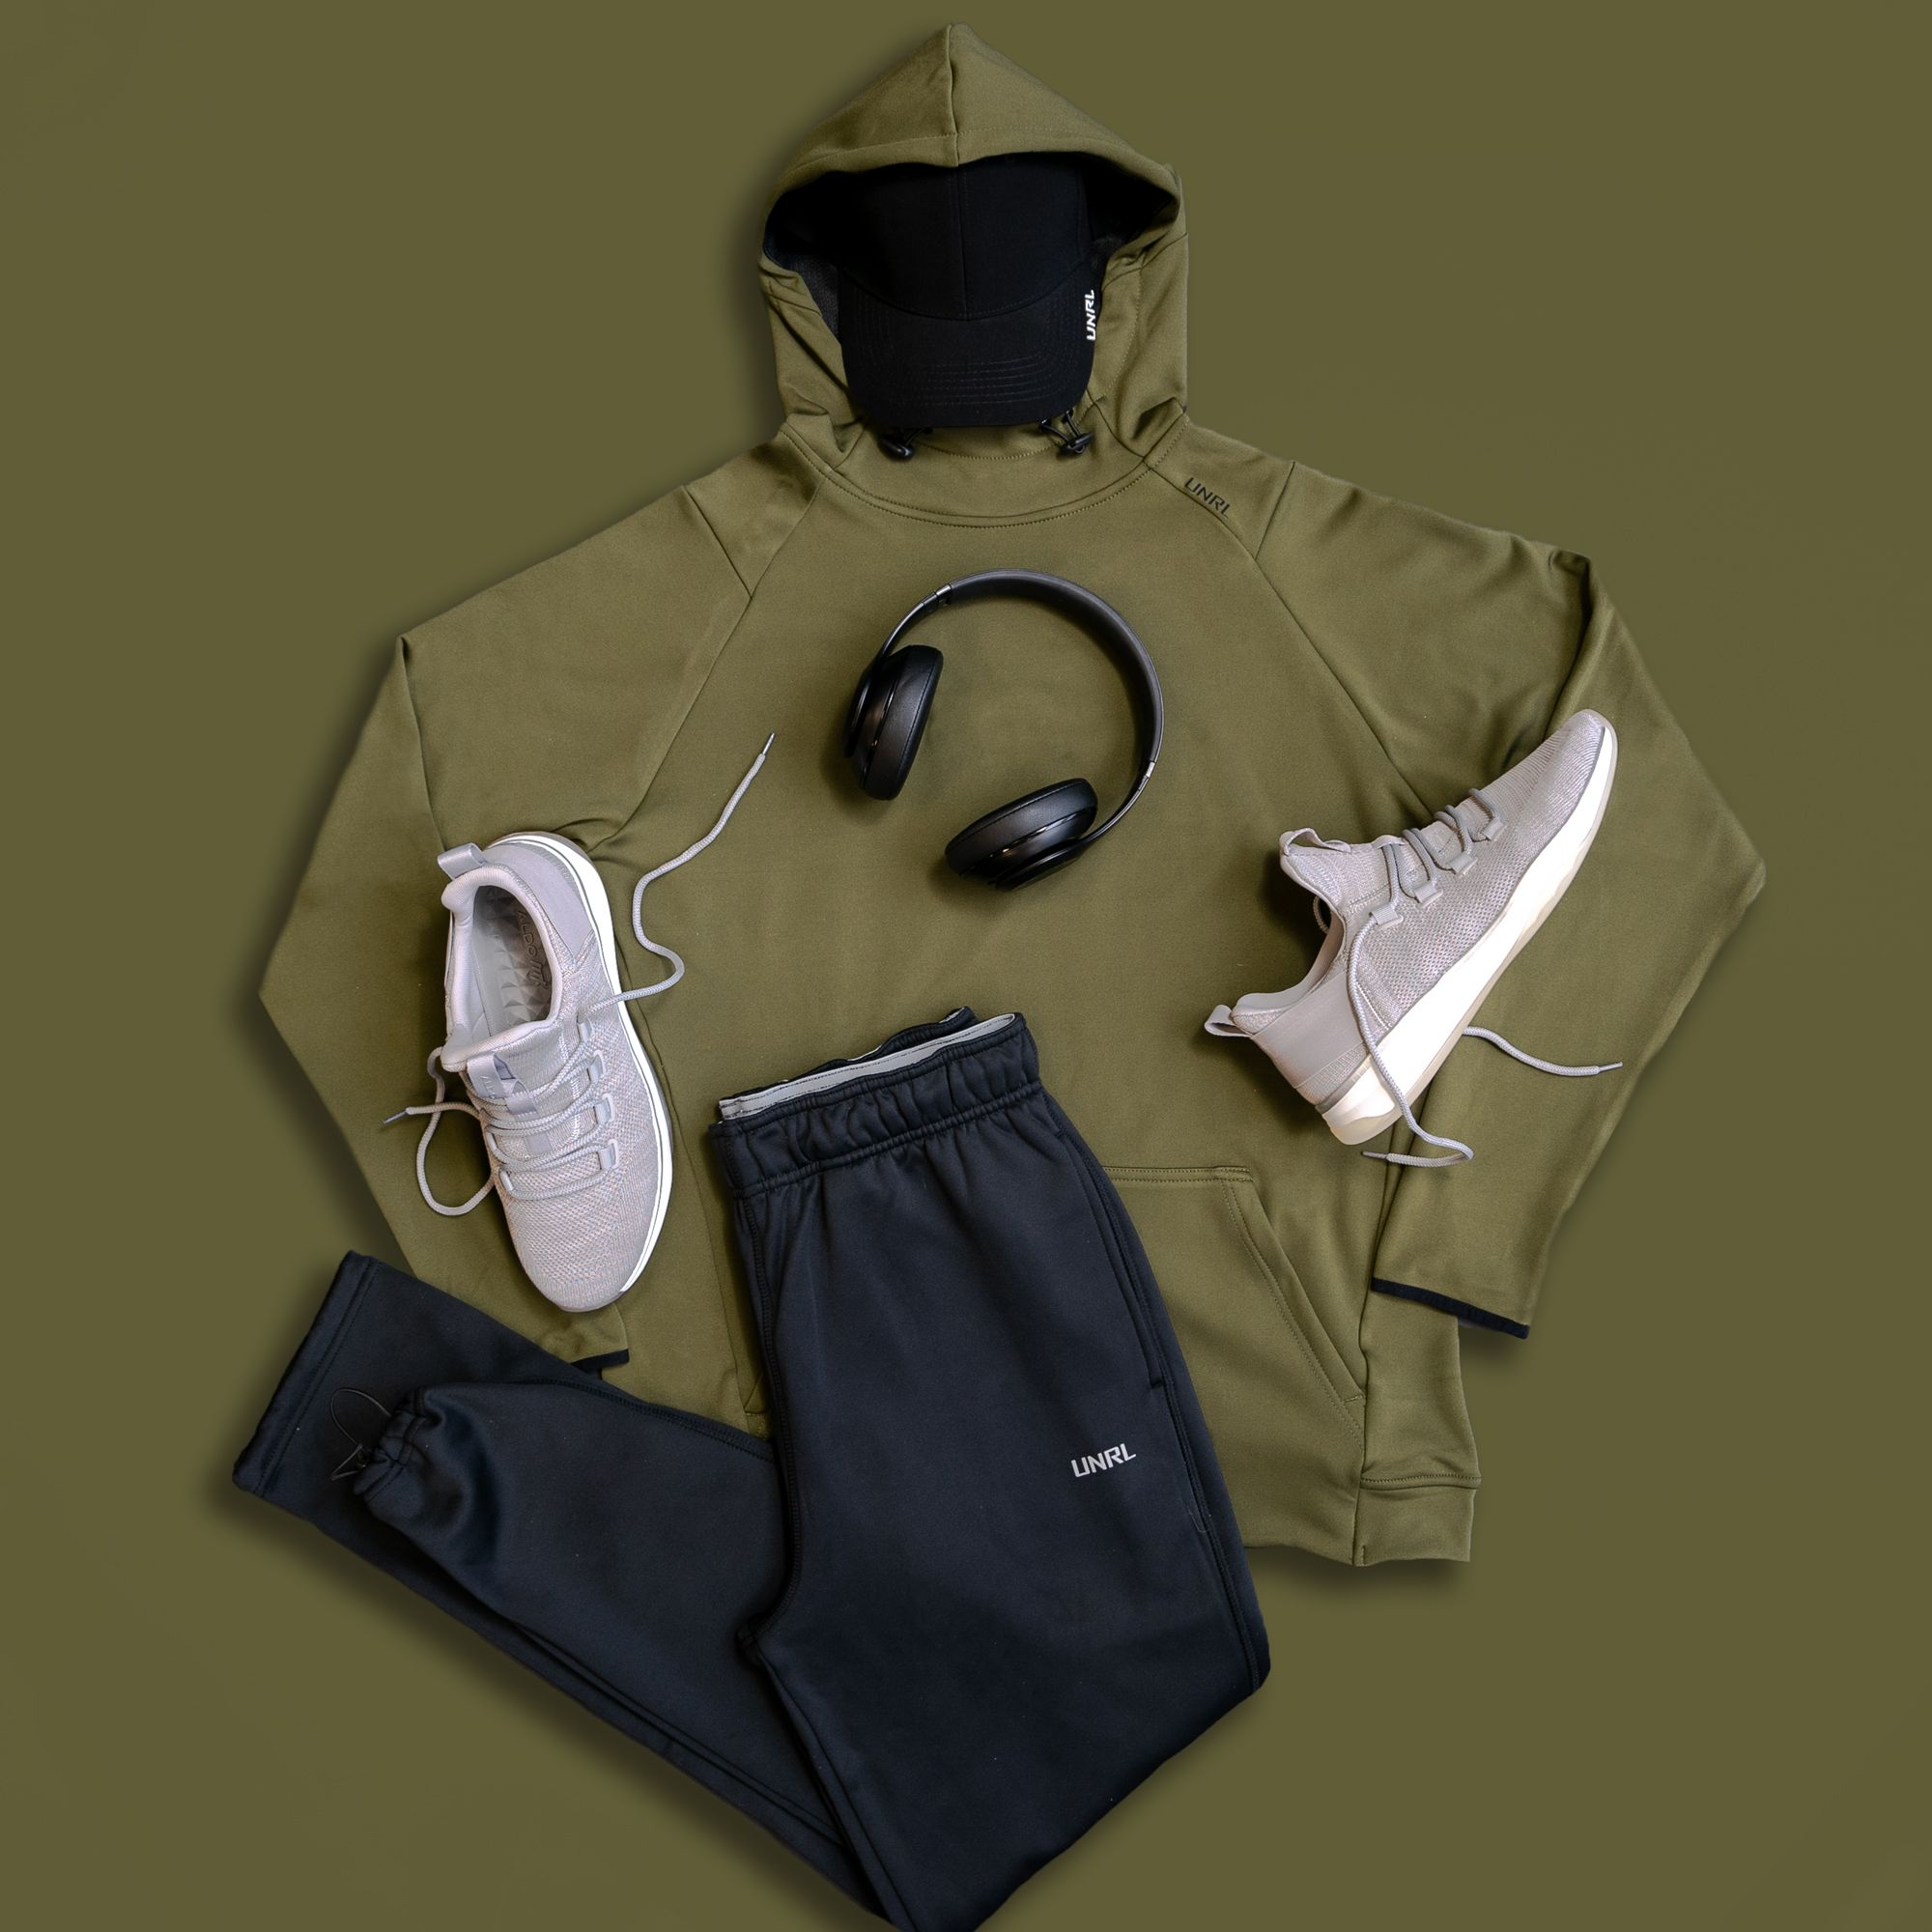 Comfort Redefined | Athleisure brands, Functional clothing, Lifestyle  clothing